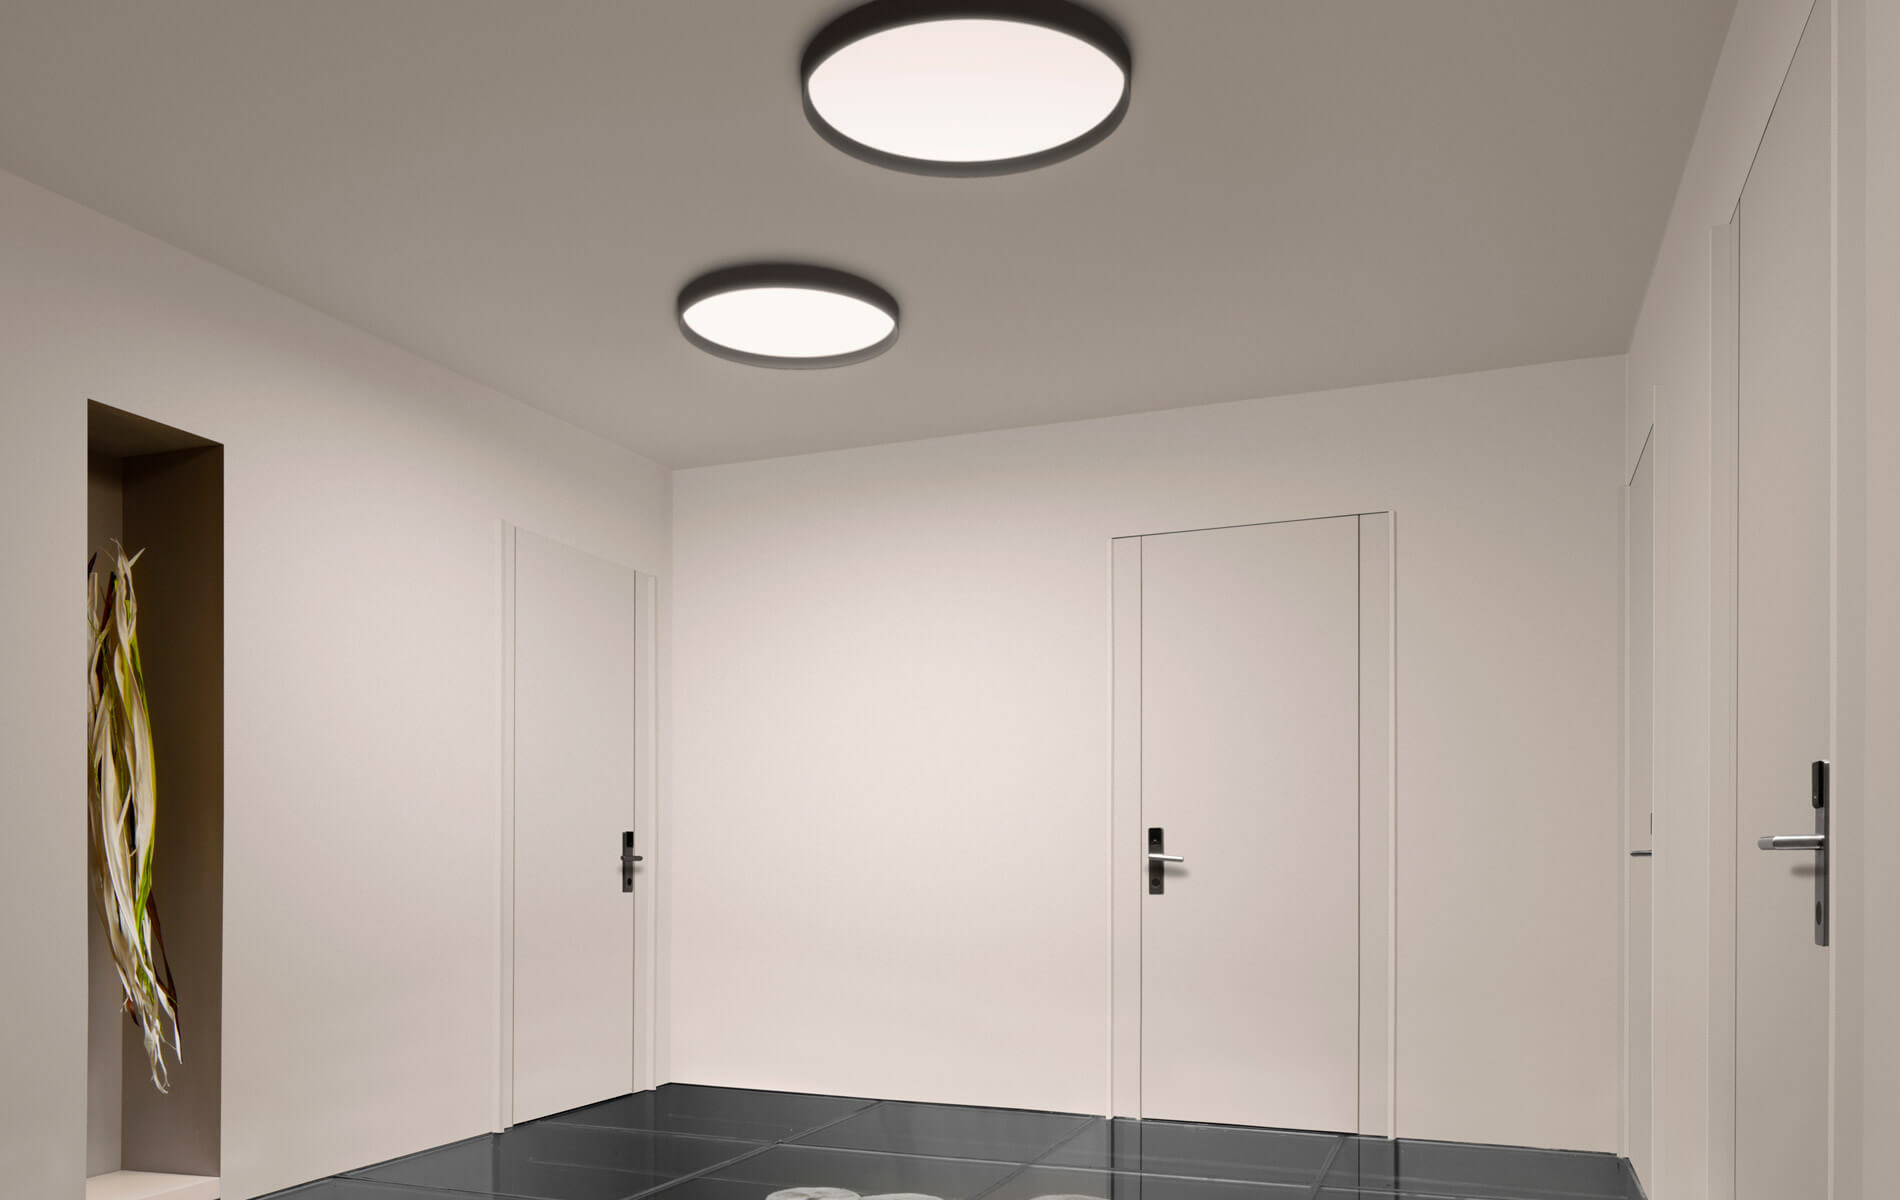 More information of Vibia circular UP ceiling lamp